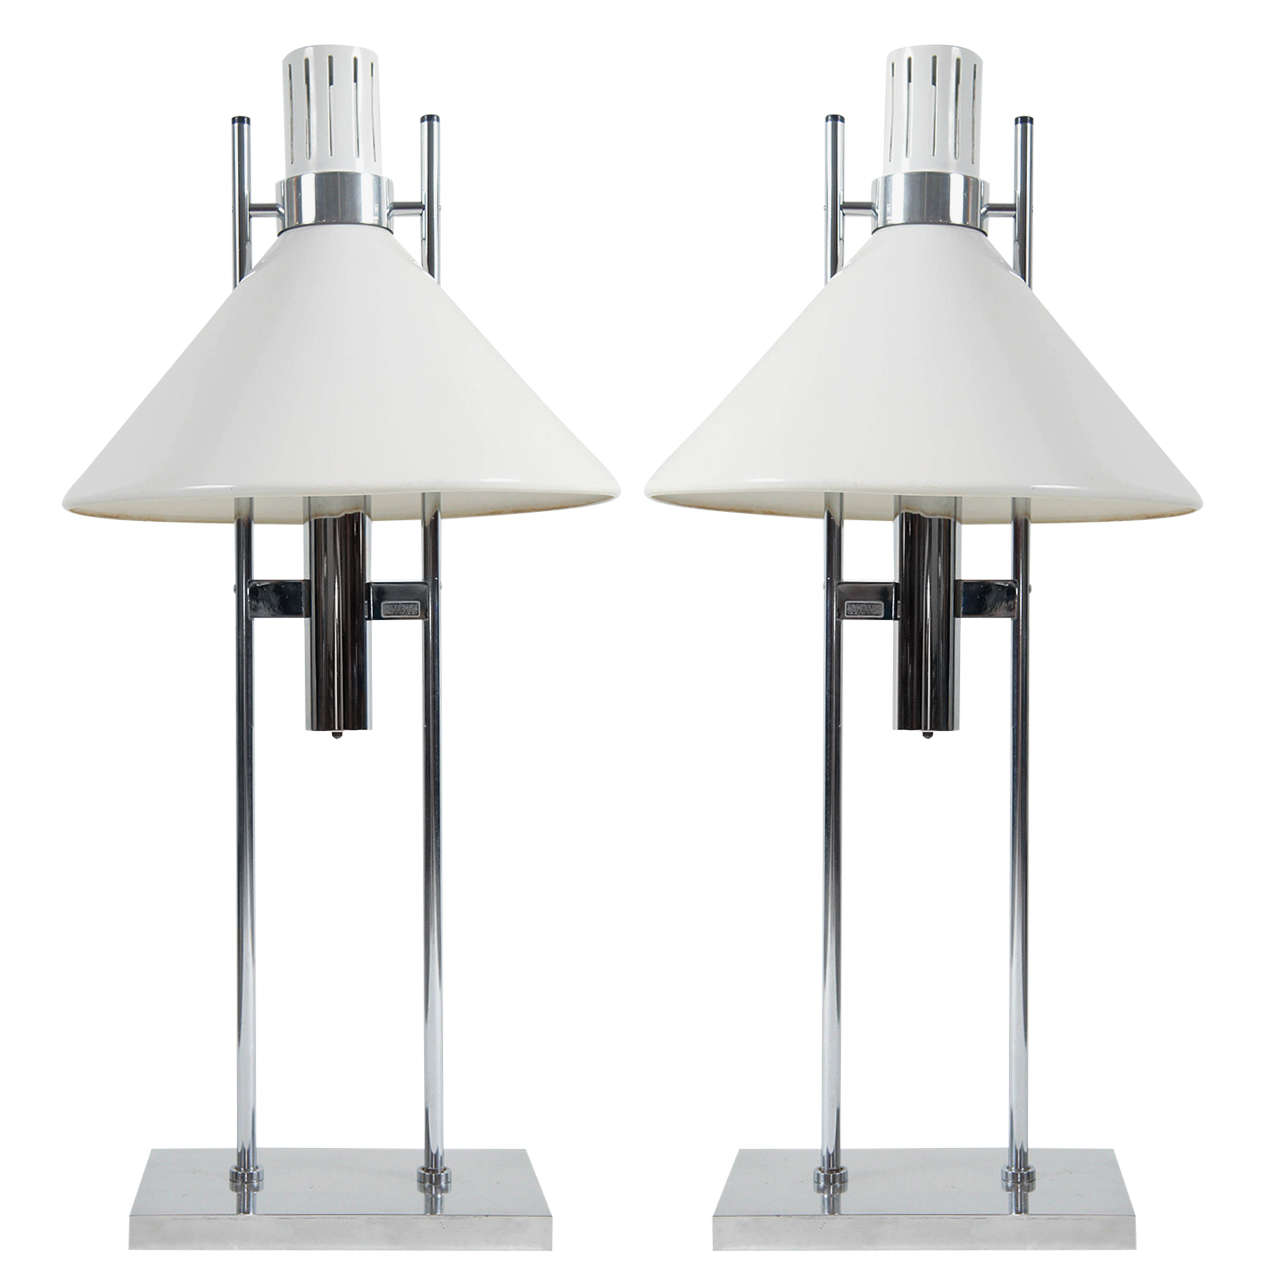 pair of Space Age Table lamps in polished aluminum by Robert Sonneman